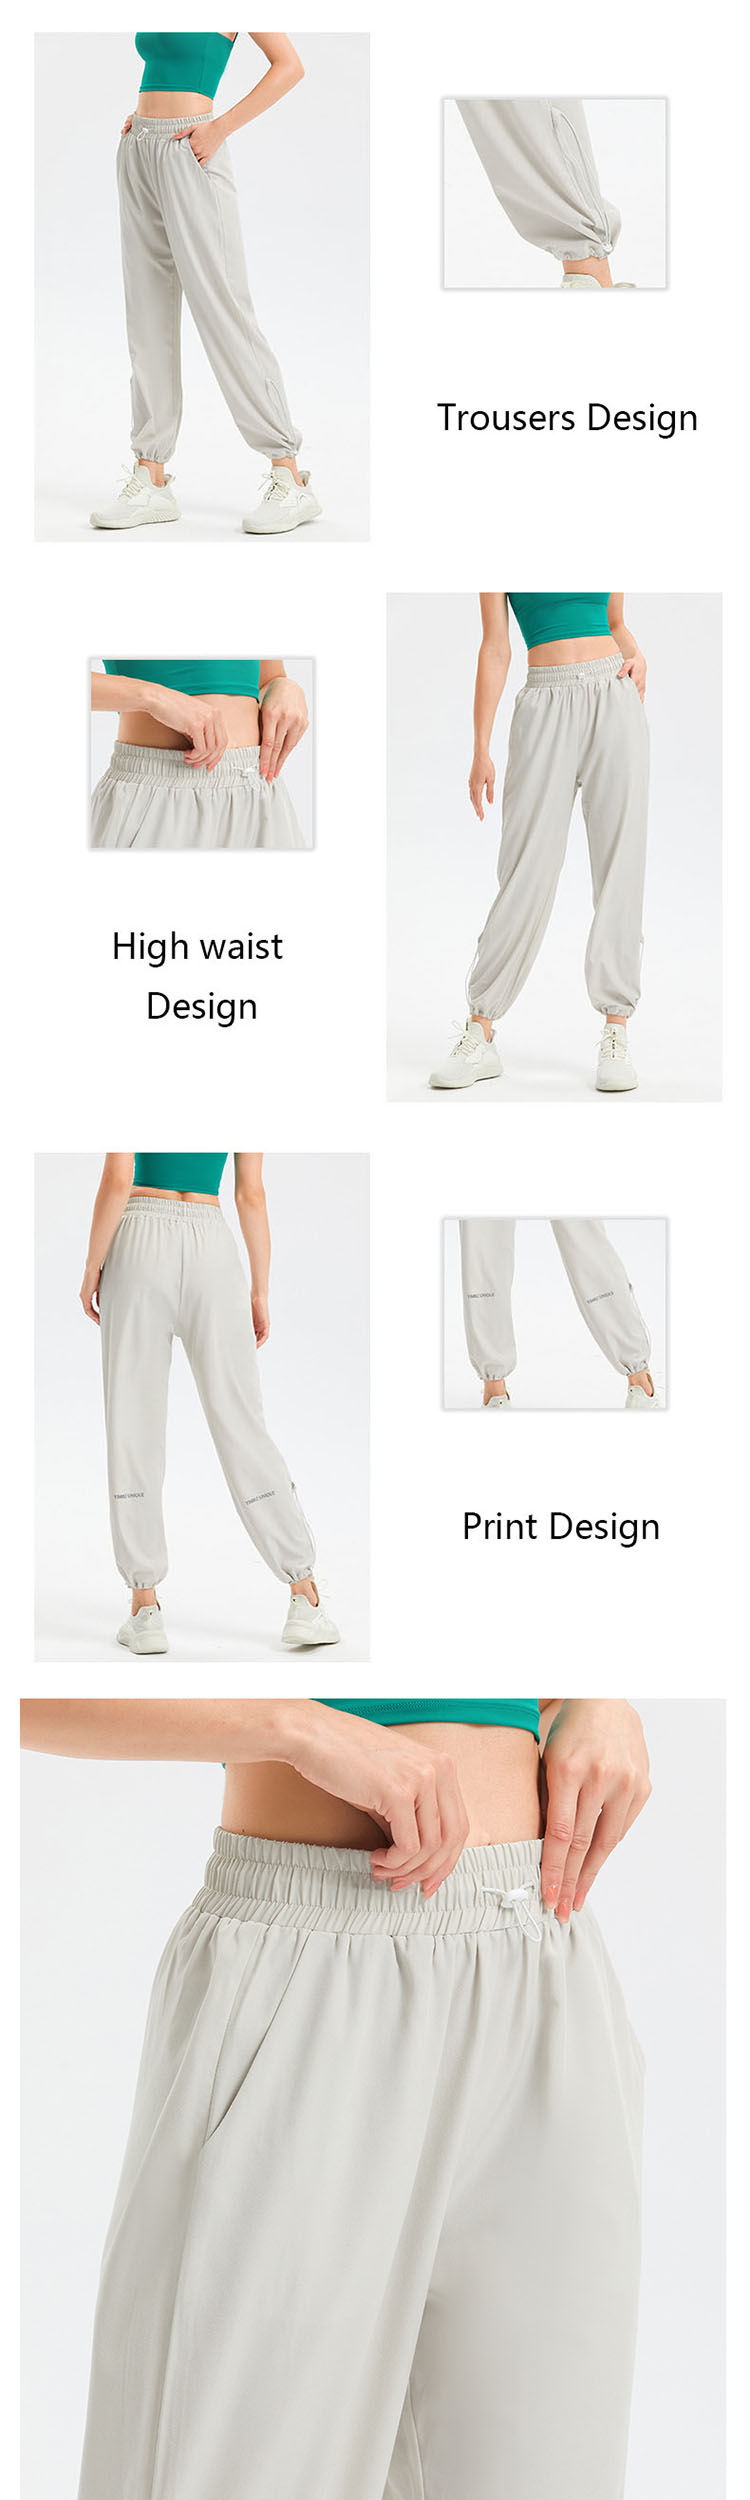 by cutting the side seams of the trousers to reduce the amount of the trouser legs.